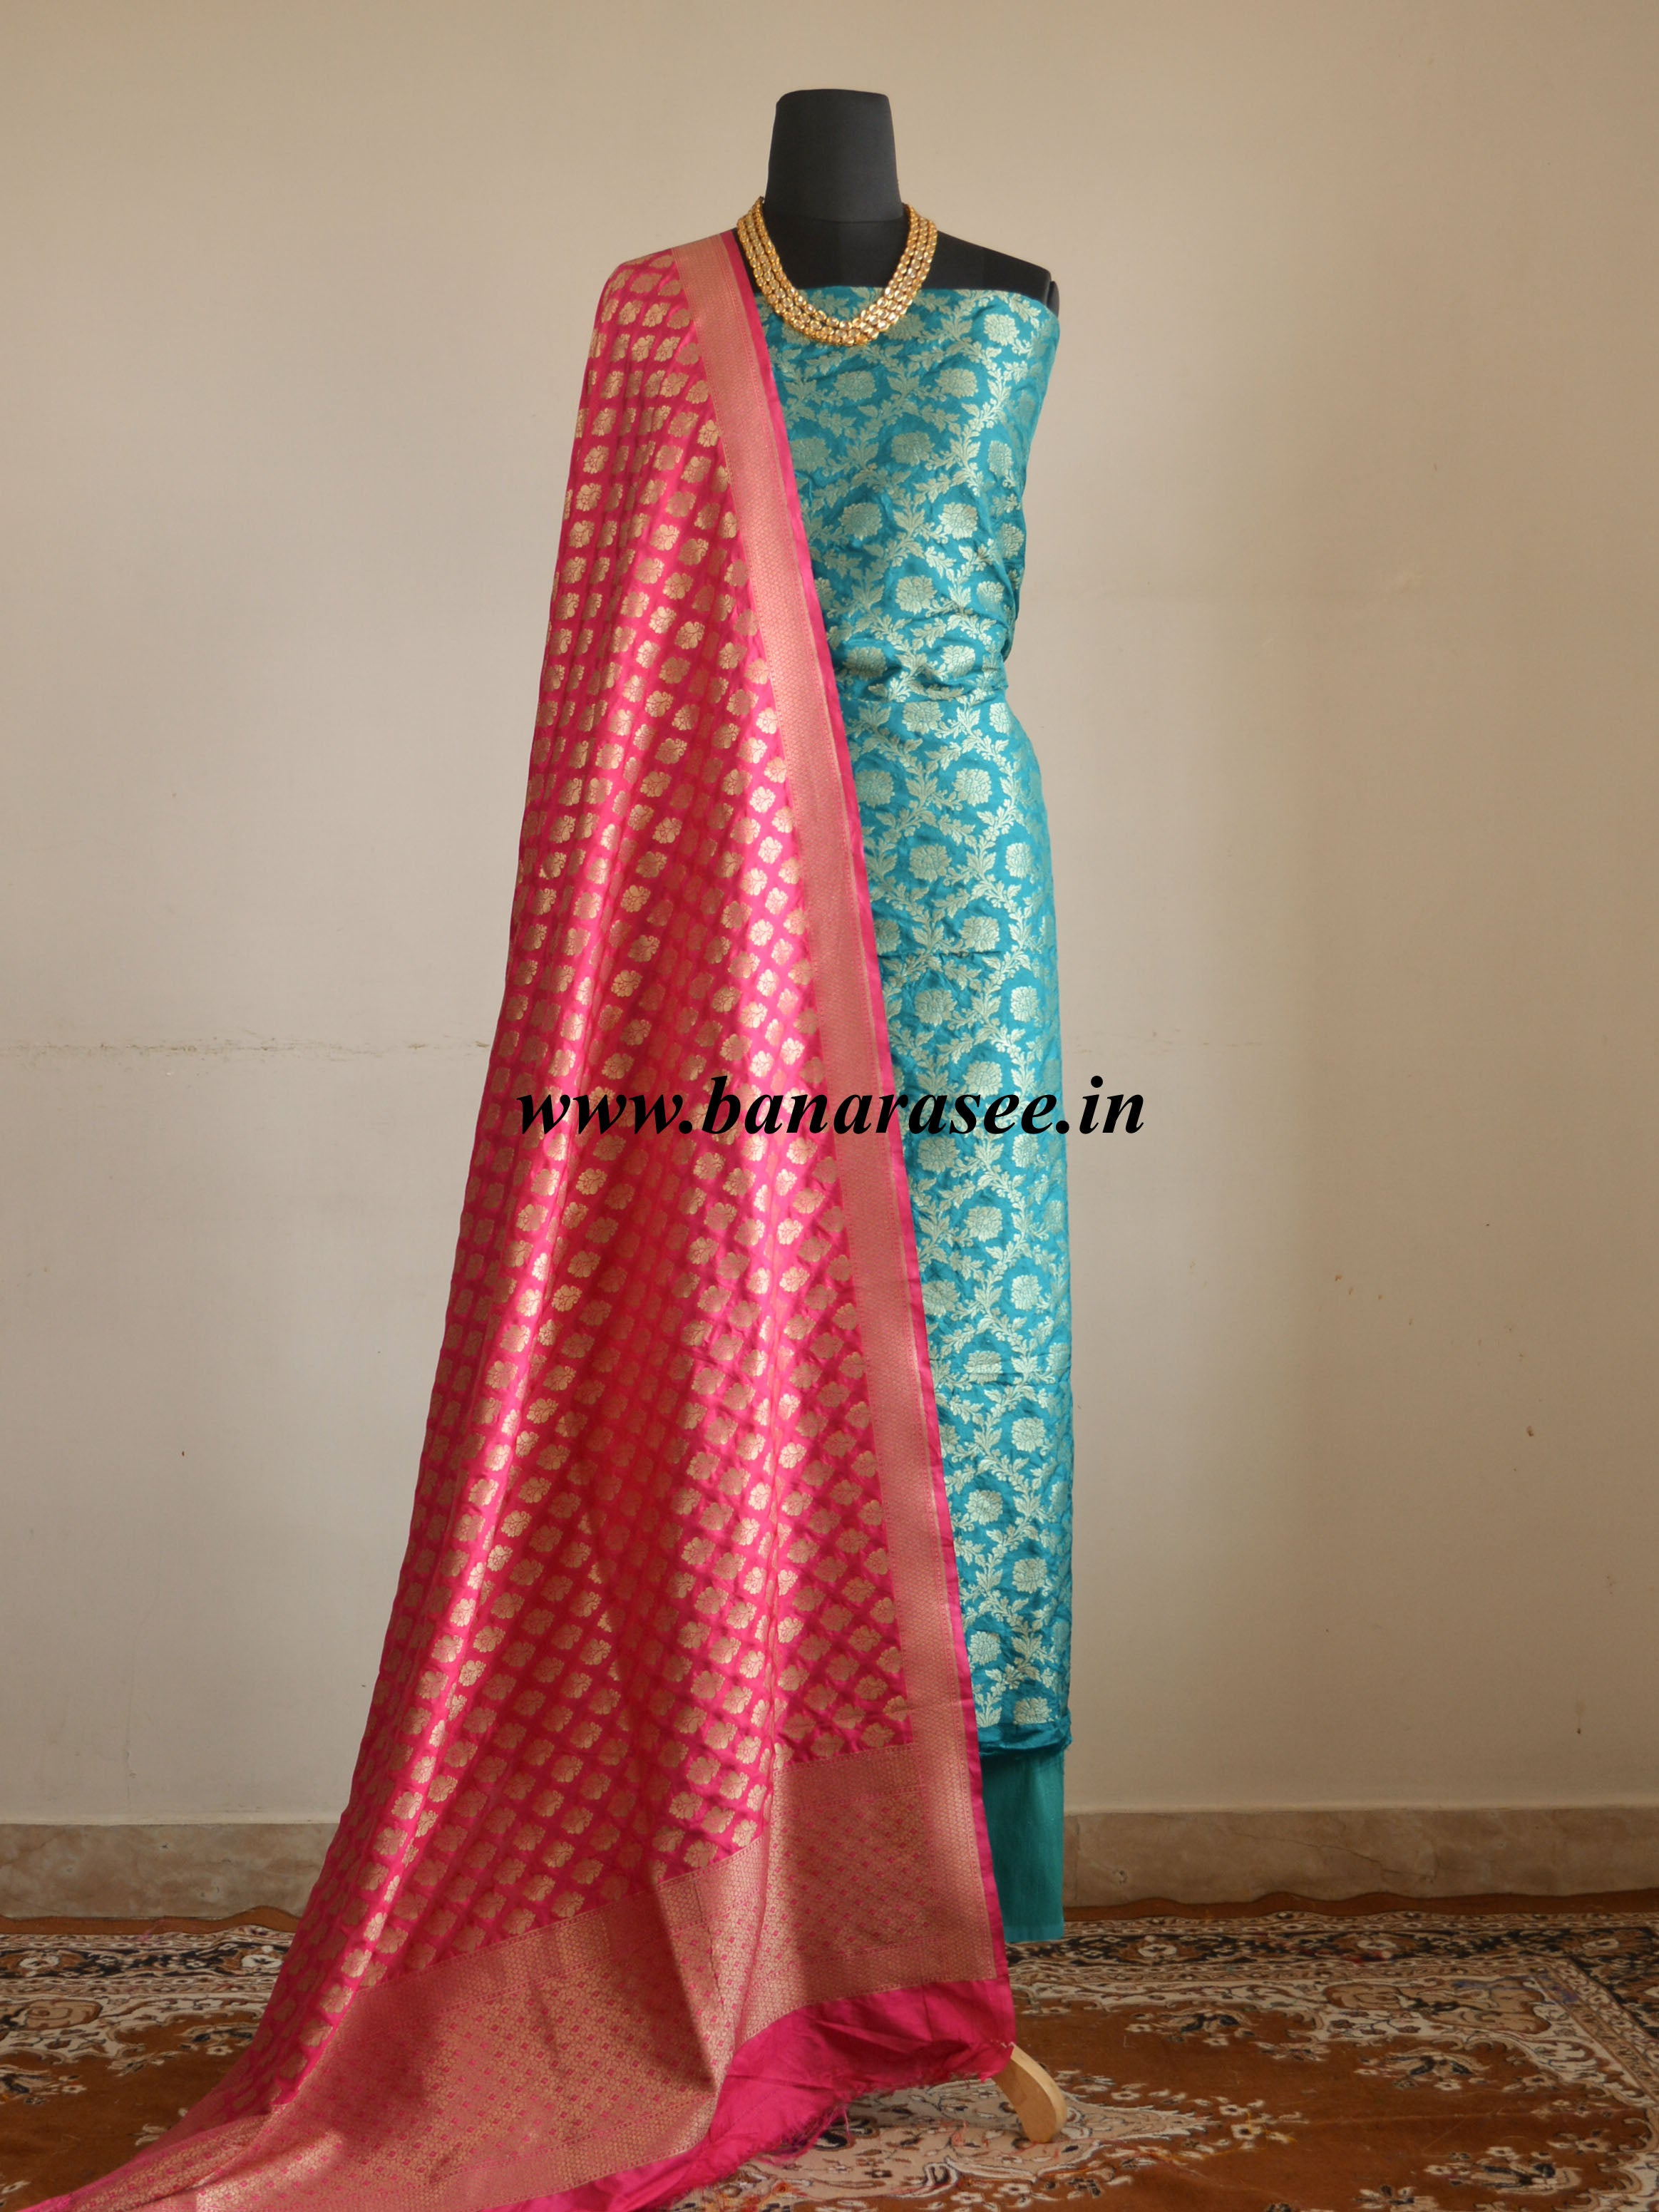 Banarasee Salwar Kameez Semi Silk Zari Jaal Work Fabric & Hot Pink Dupatta-Teal Green